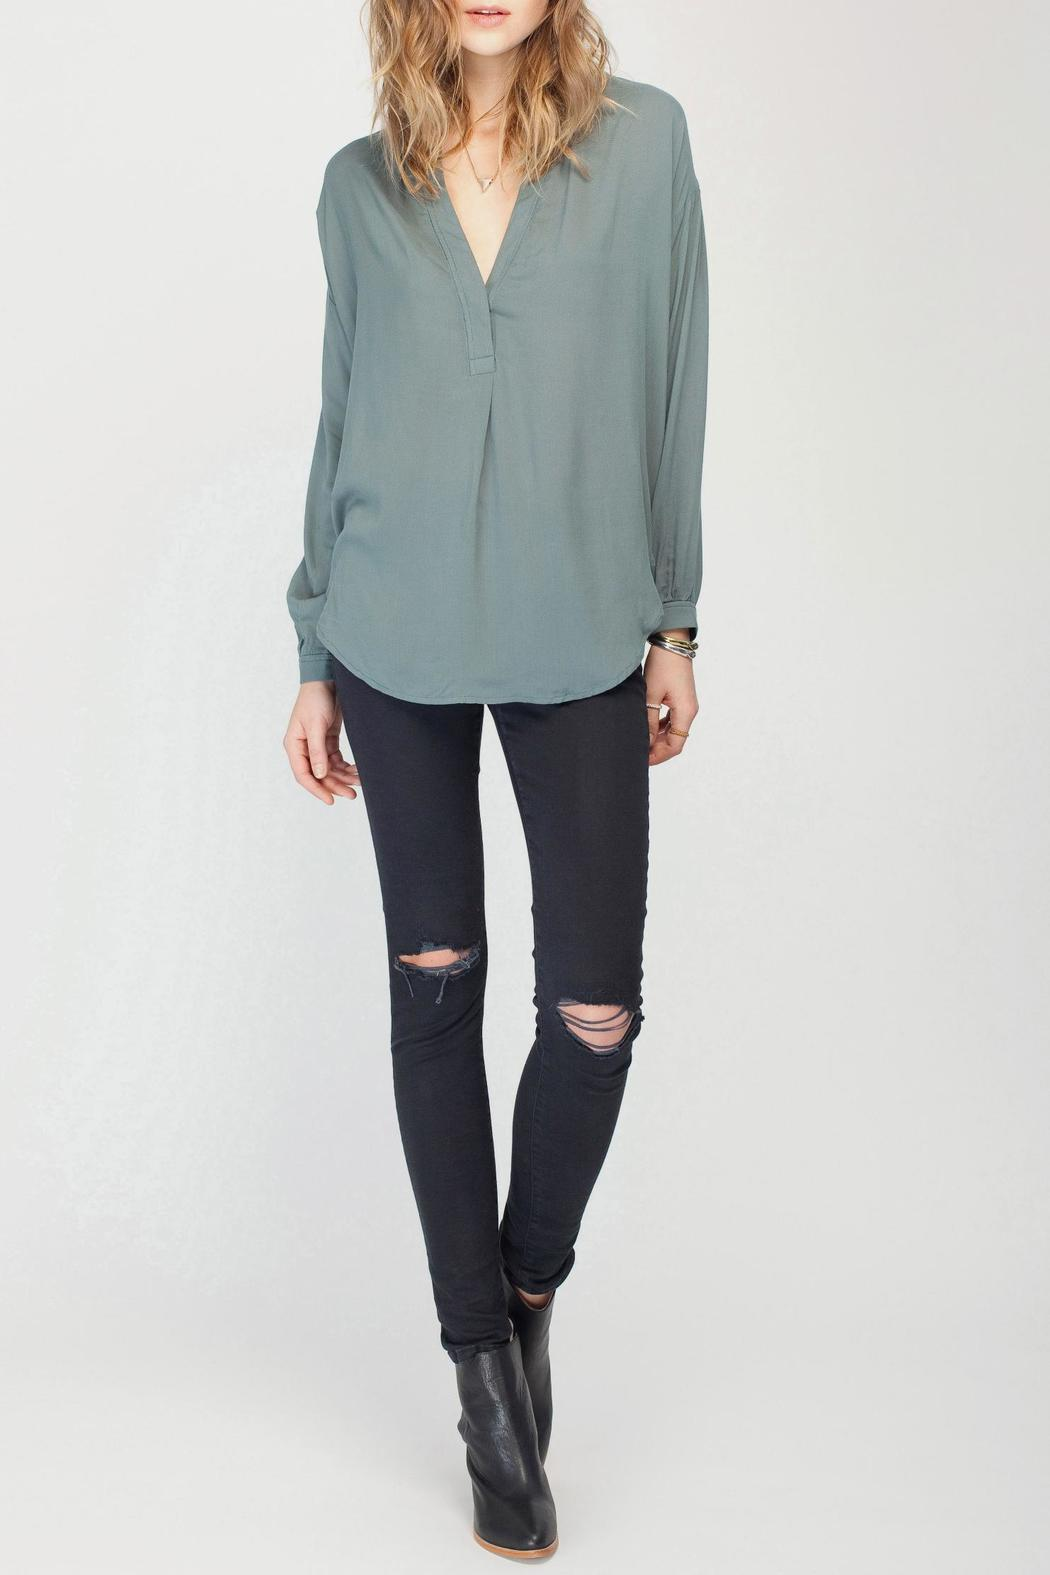 Gentle Fawn Solid Balsam Blouse - Front Full Image